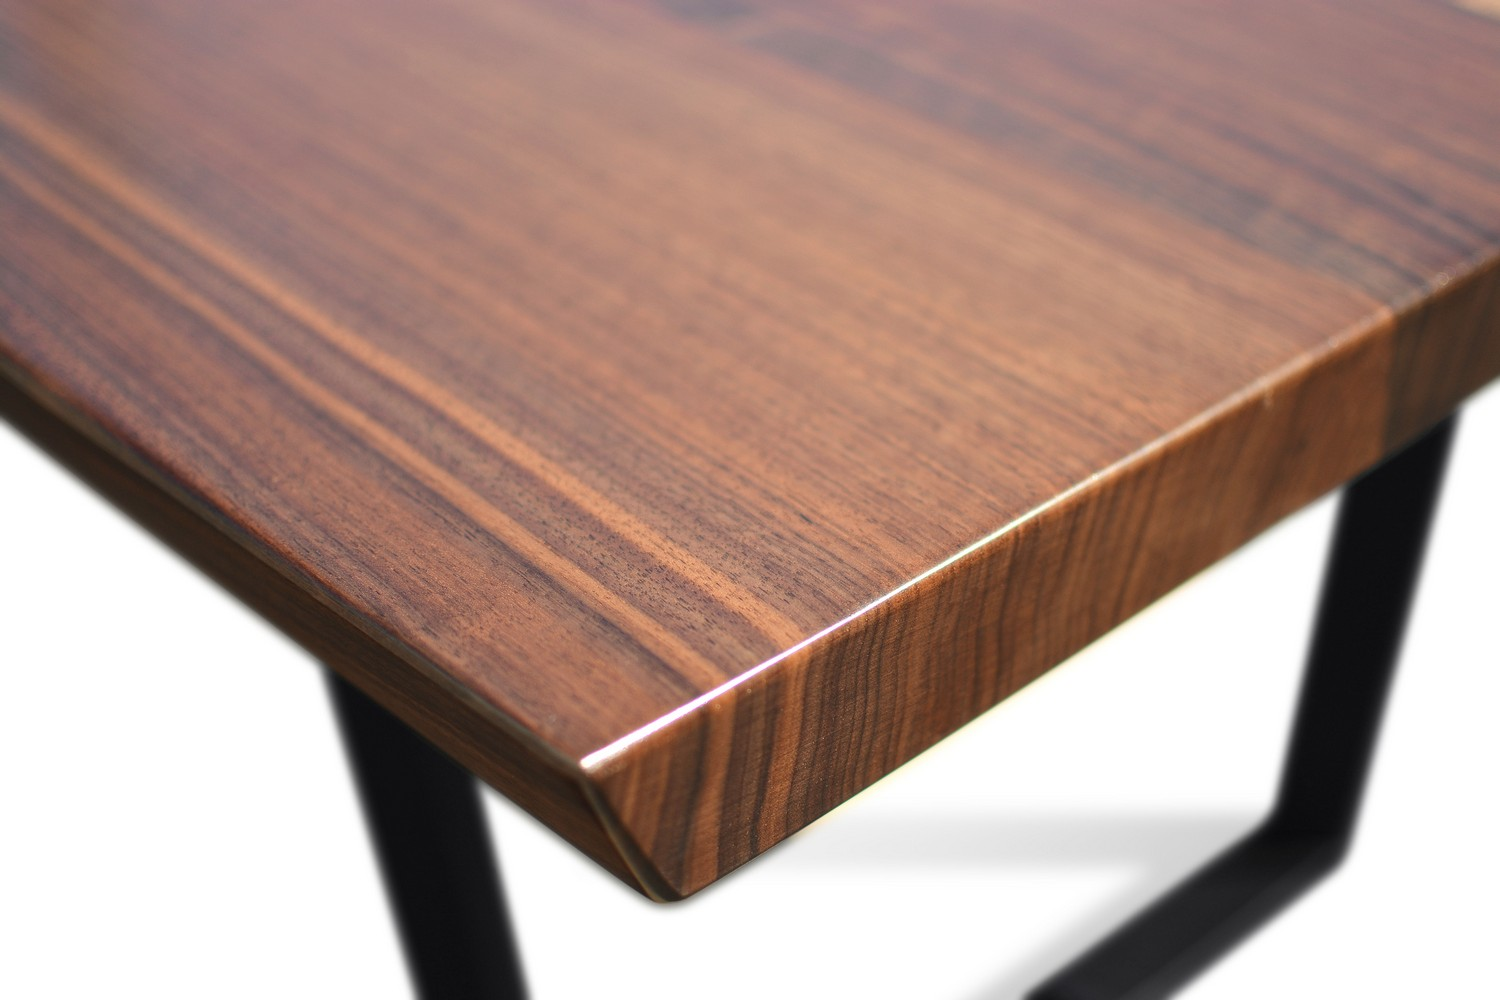 Etz & Steel Viceroy Live Edge Table Close Up 2.jpg